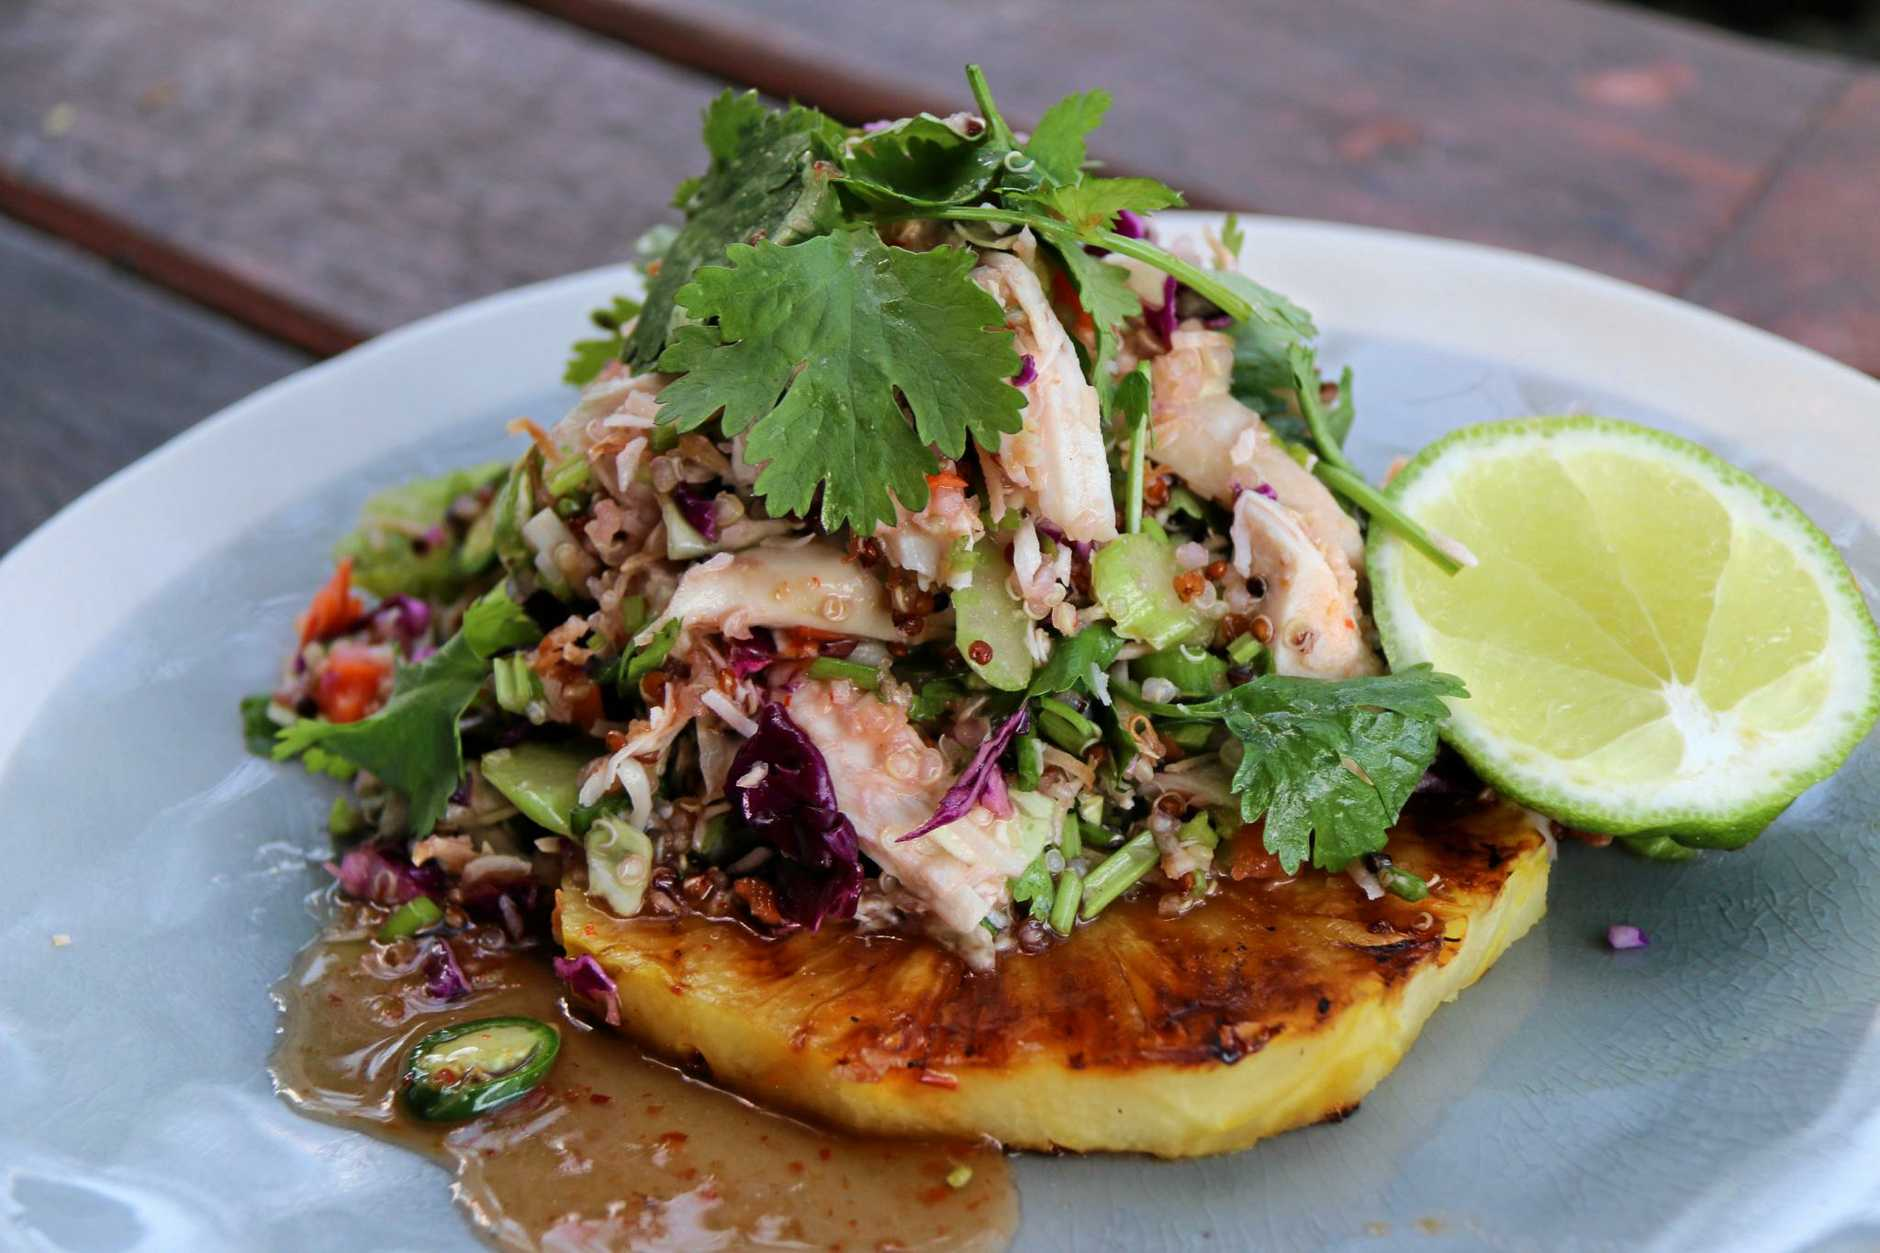 Caramelised pineapple, coconut, quinoa and chicken salad with spicy chilli dressing.